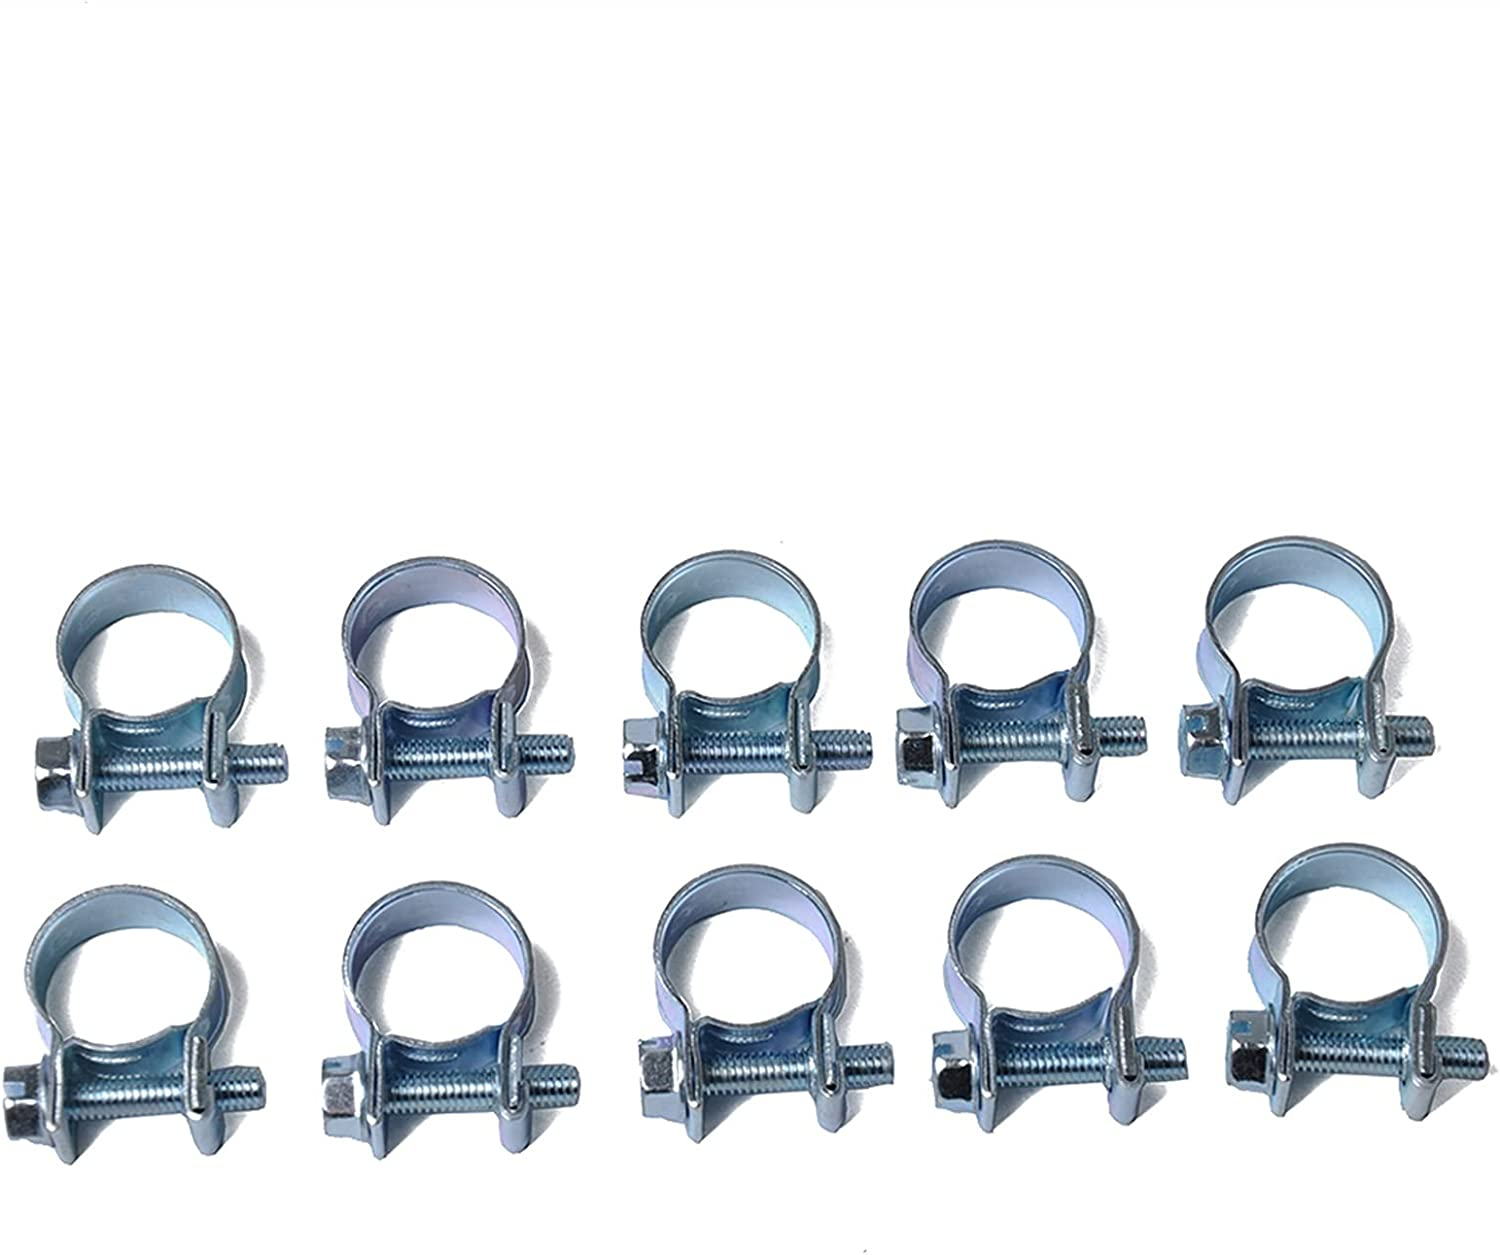 Outlet Raleigh Mall SALE HWNGDI 7-9mm Clamp Fuel Injection Assortmen Hose Clamps Air